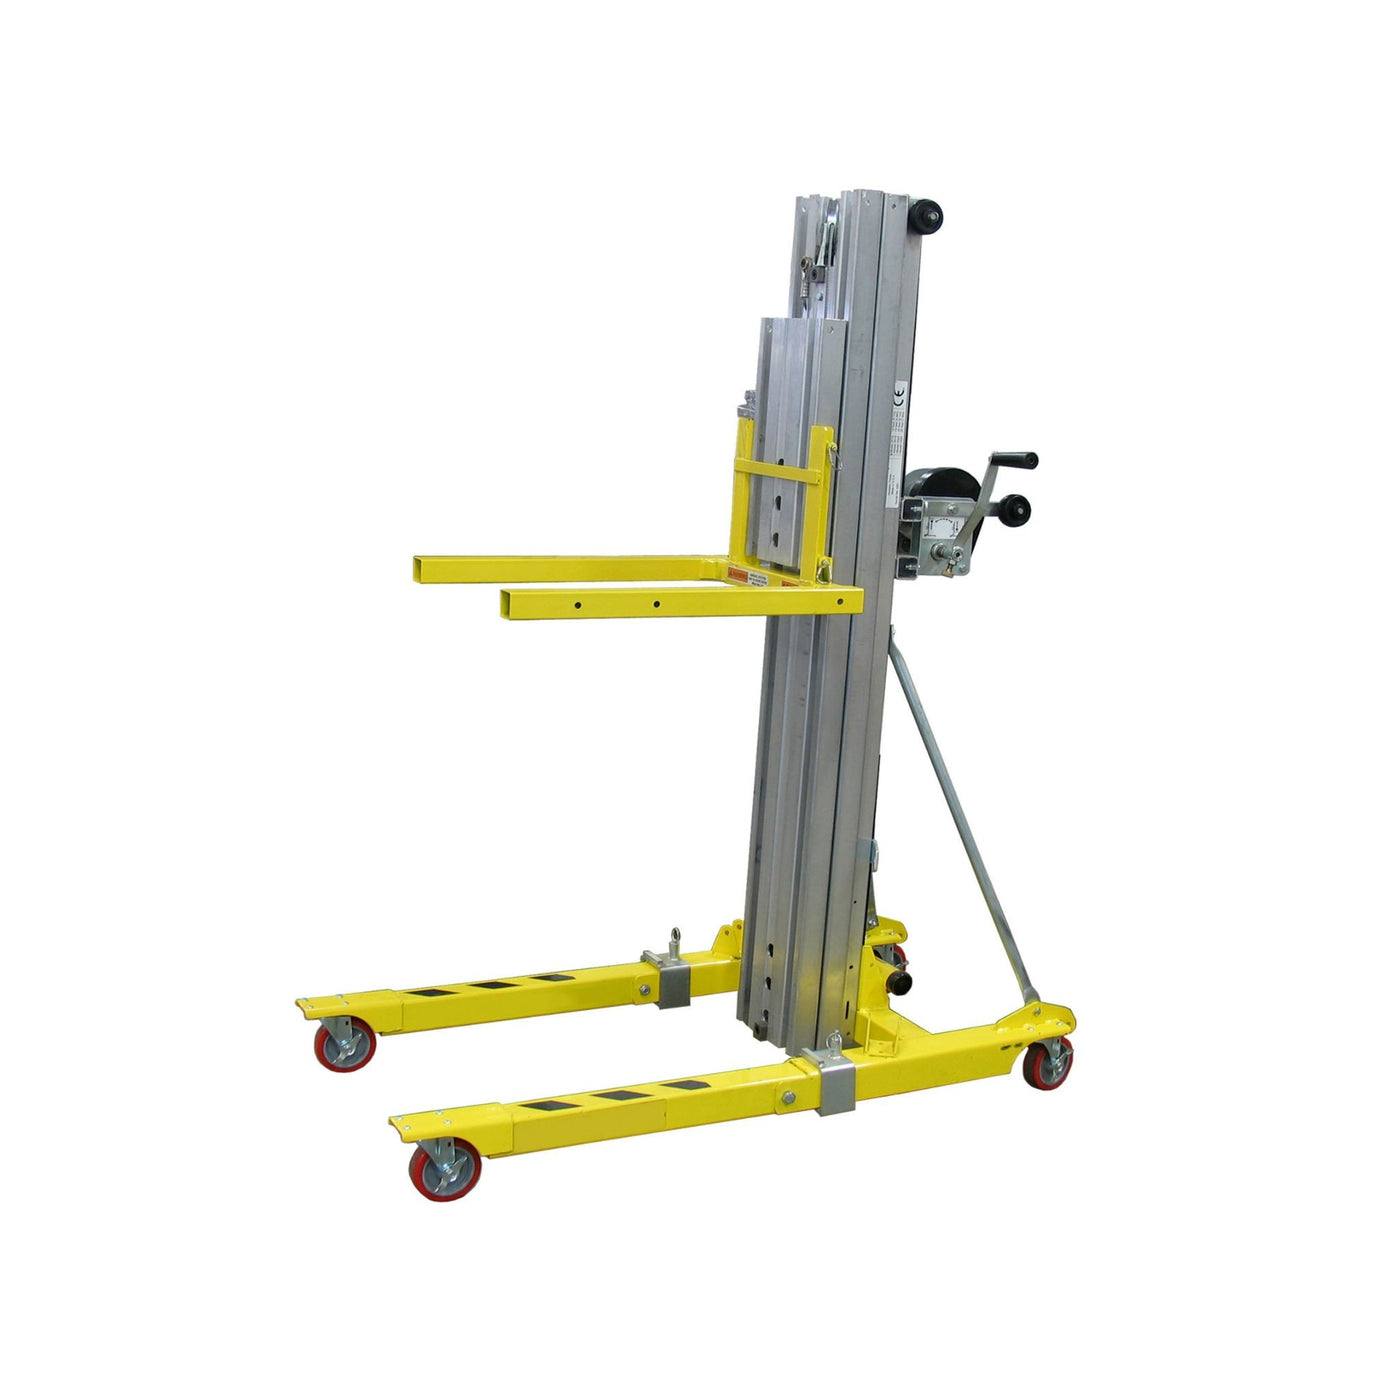 Hand Crank Cadaver Lift-Cadaver Handling & Storage Systems-Mortech Manufacturing Company Inc. Quality Stainless Steel Autopsy, Morgue, Funeral Home, Necropsy, Veterinary / Anatomy, Dissection Equipment and Accessories